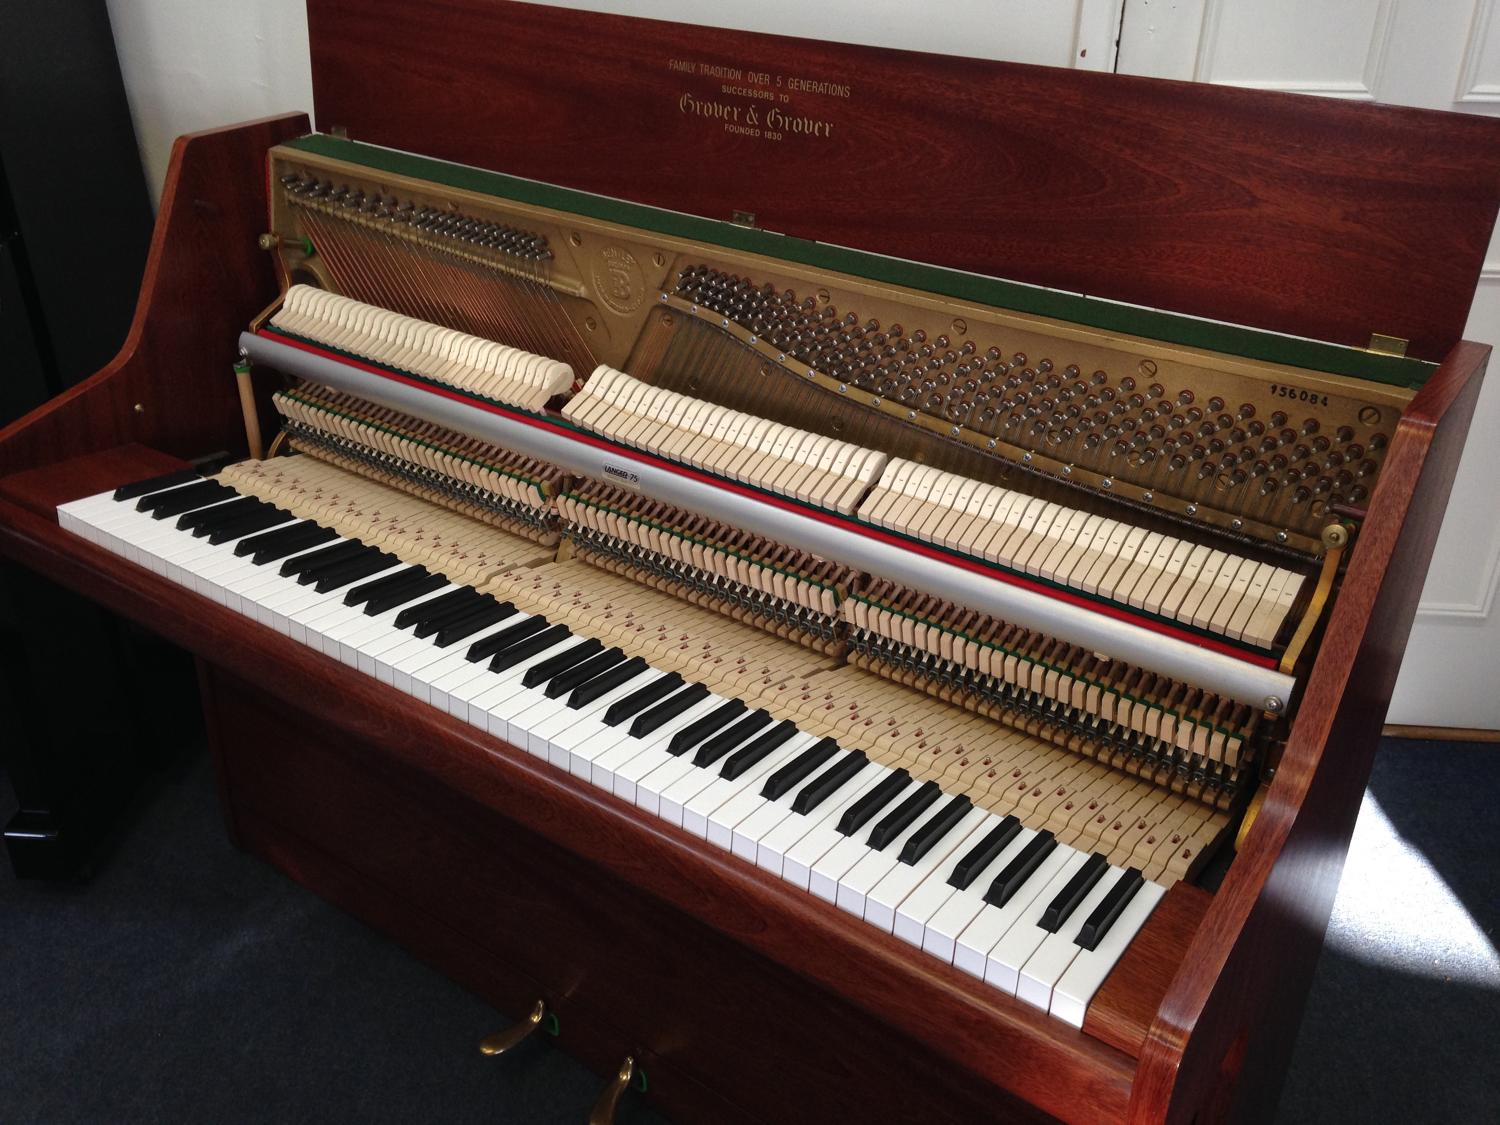 Bentley upright piano for sale in modern pianos for sale for Small upright piano dimensions